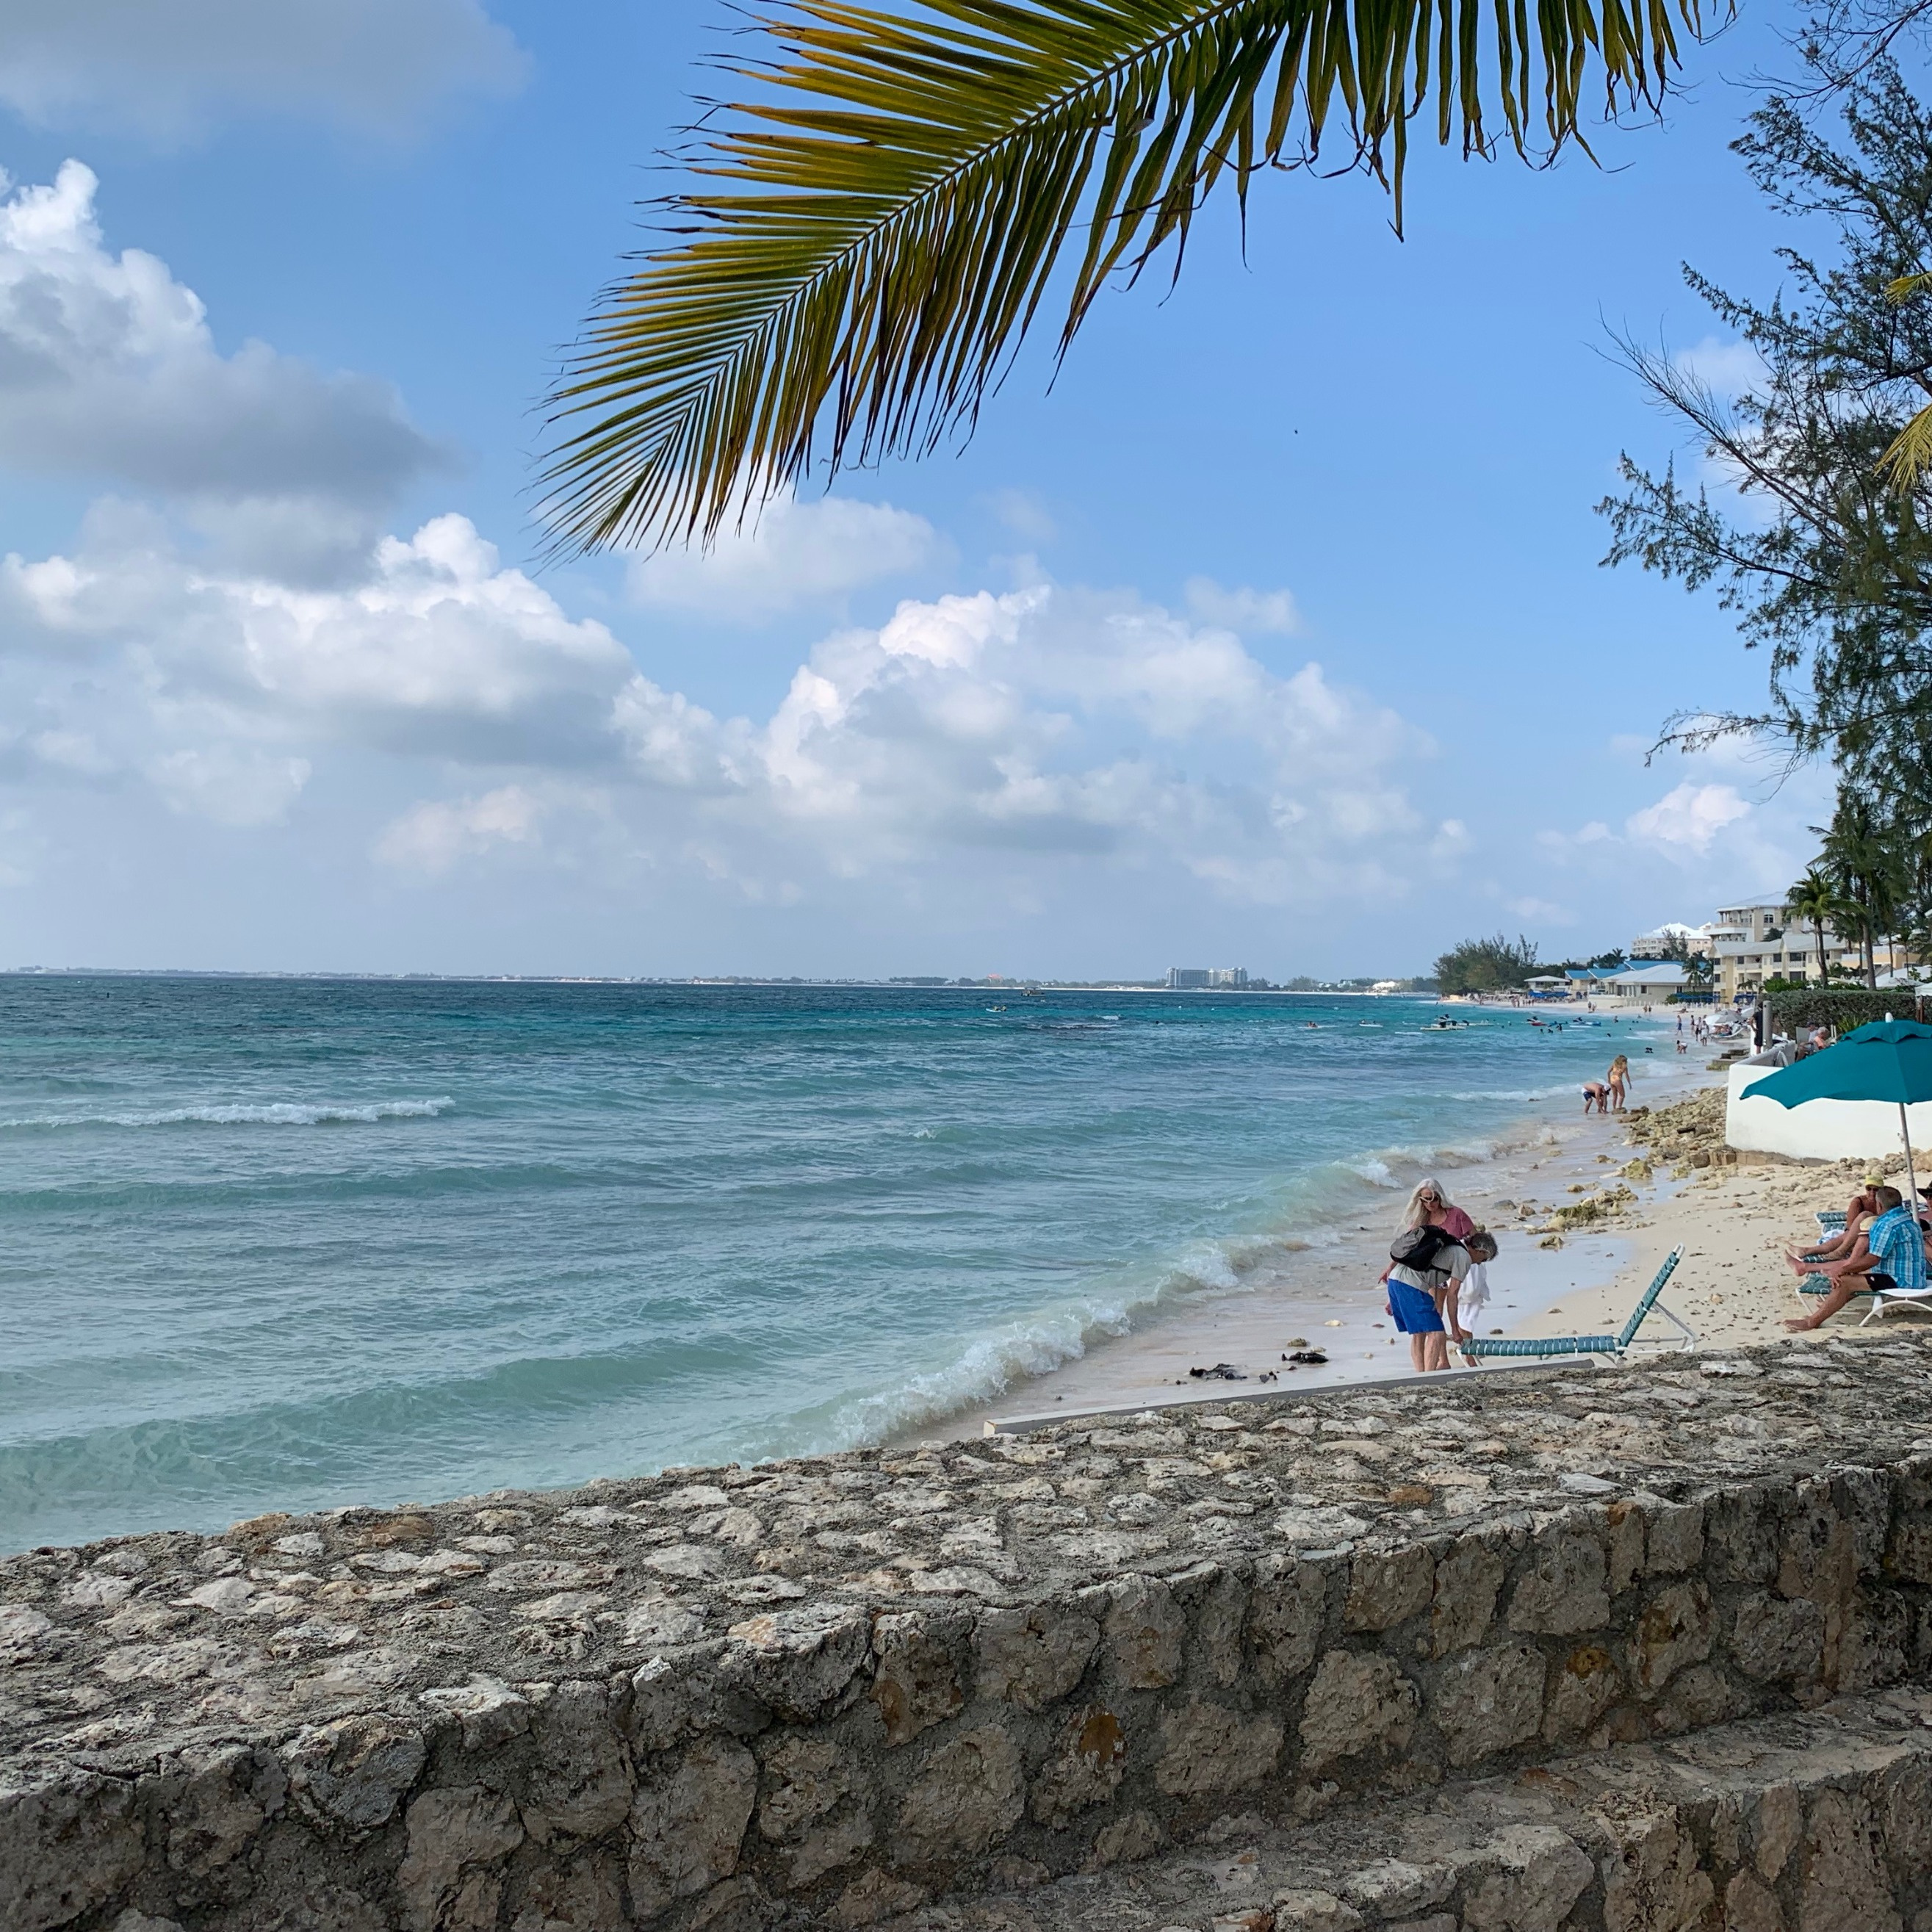 DNS, Registries, and Registrars 50% Live from the Cayman Islands w/ Tosh Lyons